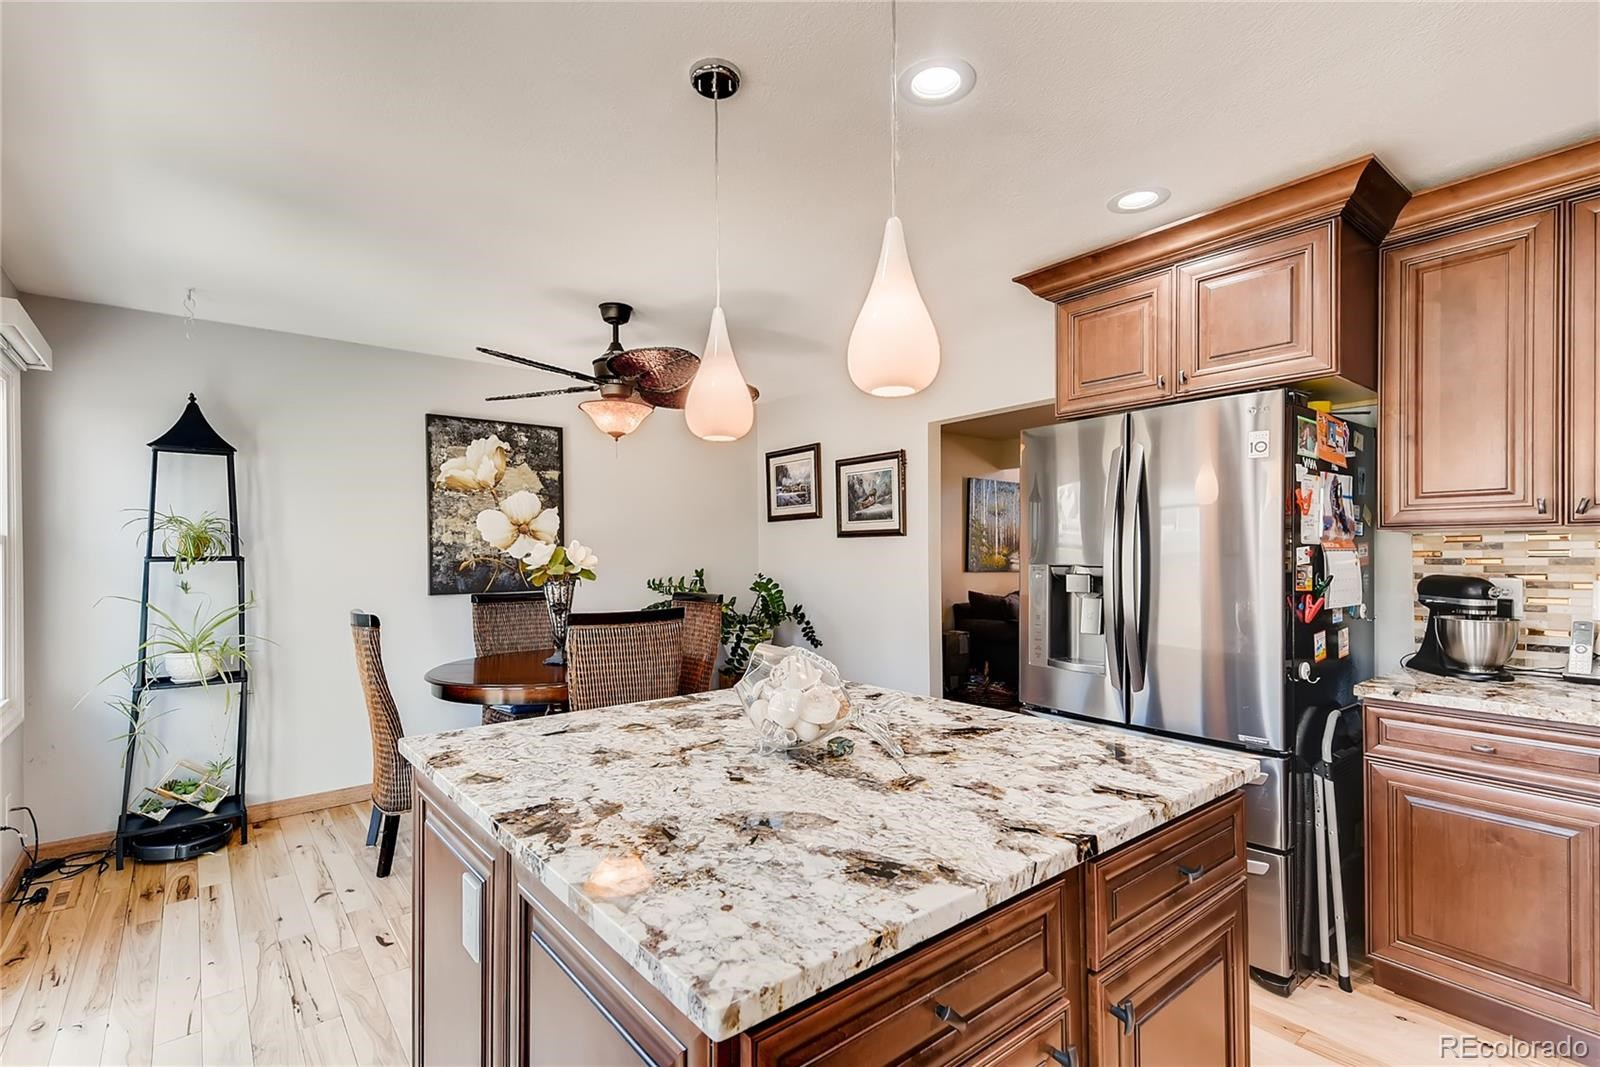 MLS# 6910180 - 7 - 2336 Ranch Drive, Westminster, CO 80234